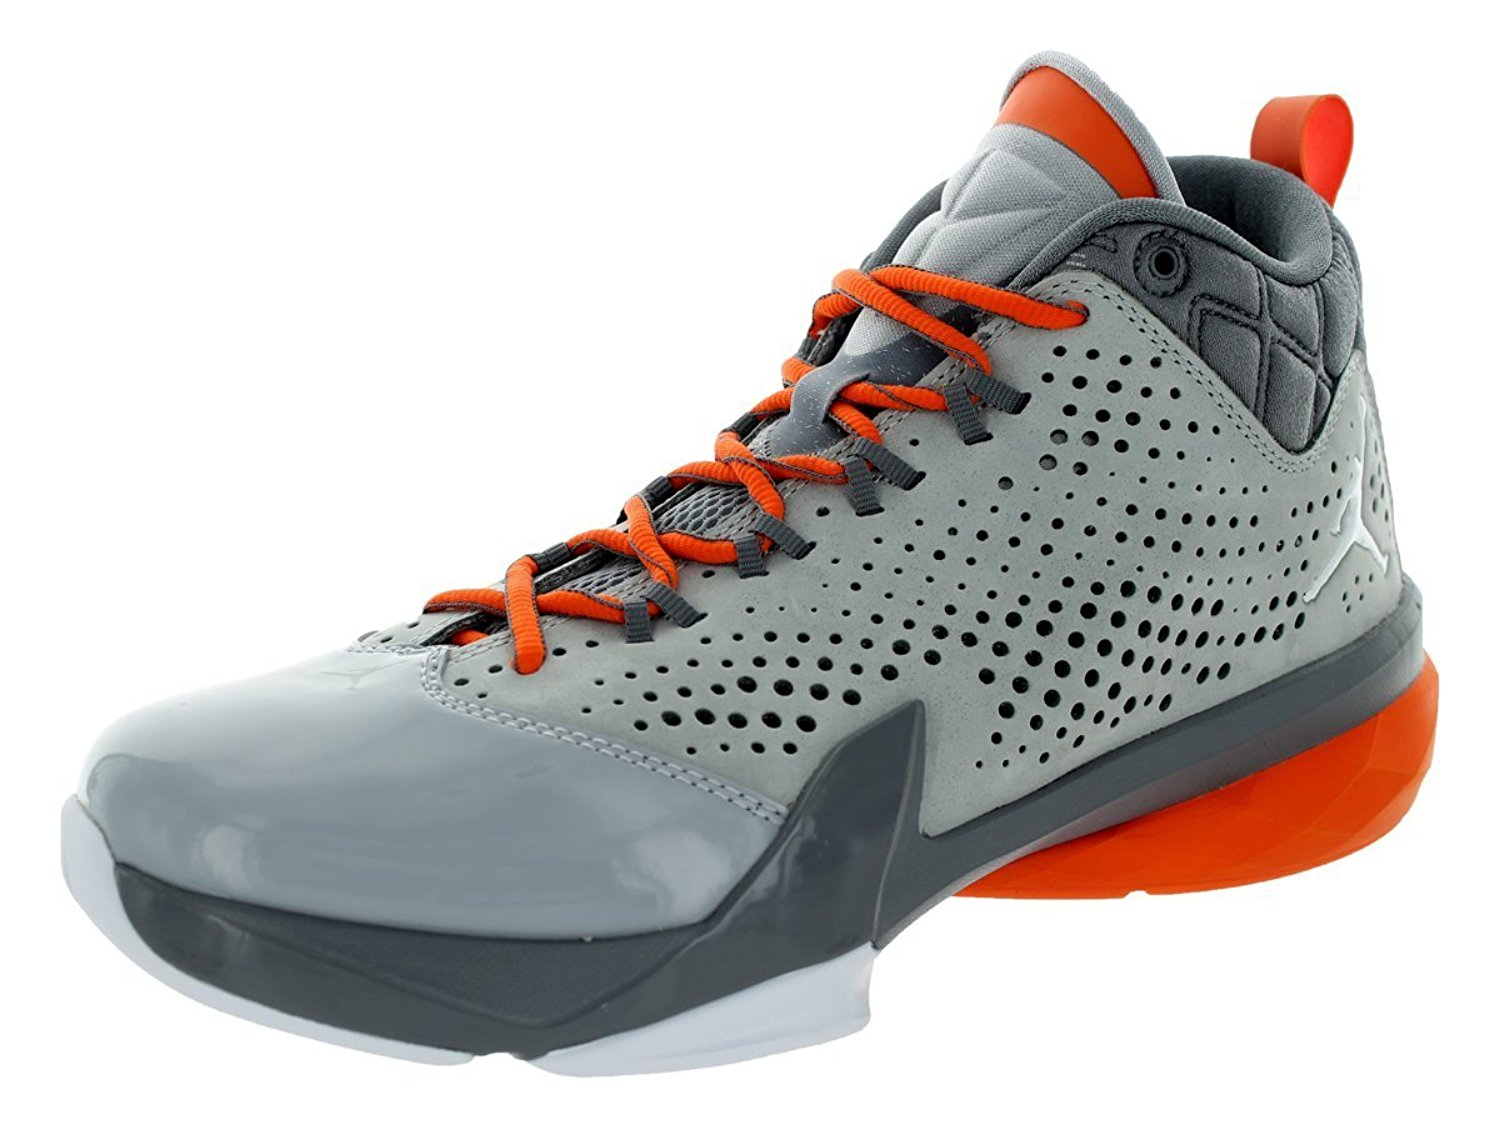 f82cdd723f4 Get Quotations · nike air jordan flight time 14.5 mens basketball trainers  654272 sneakers shoes